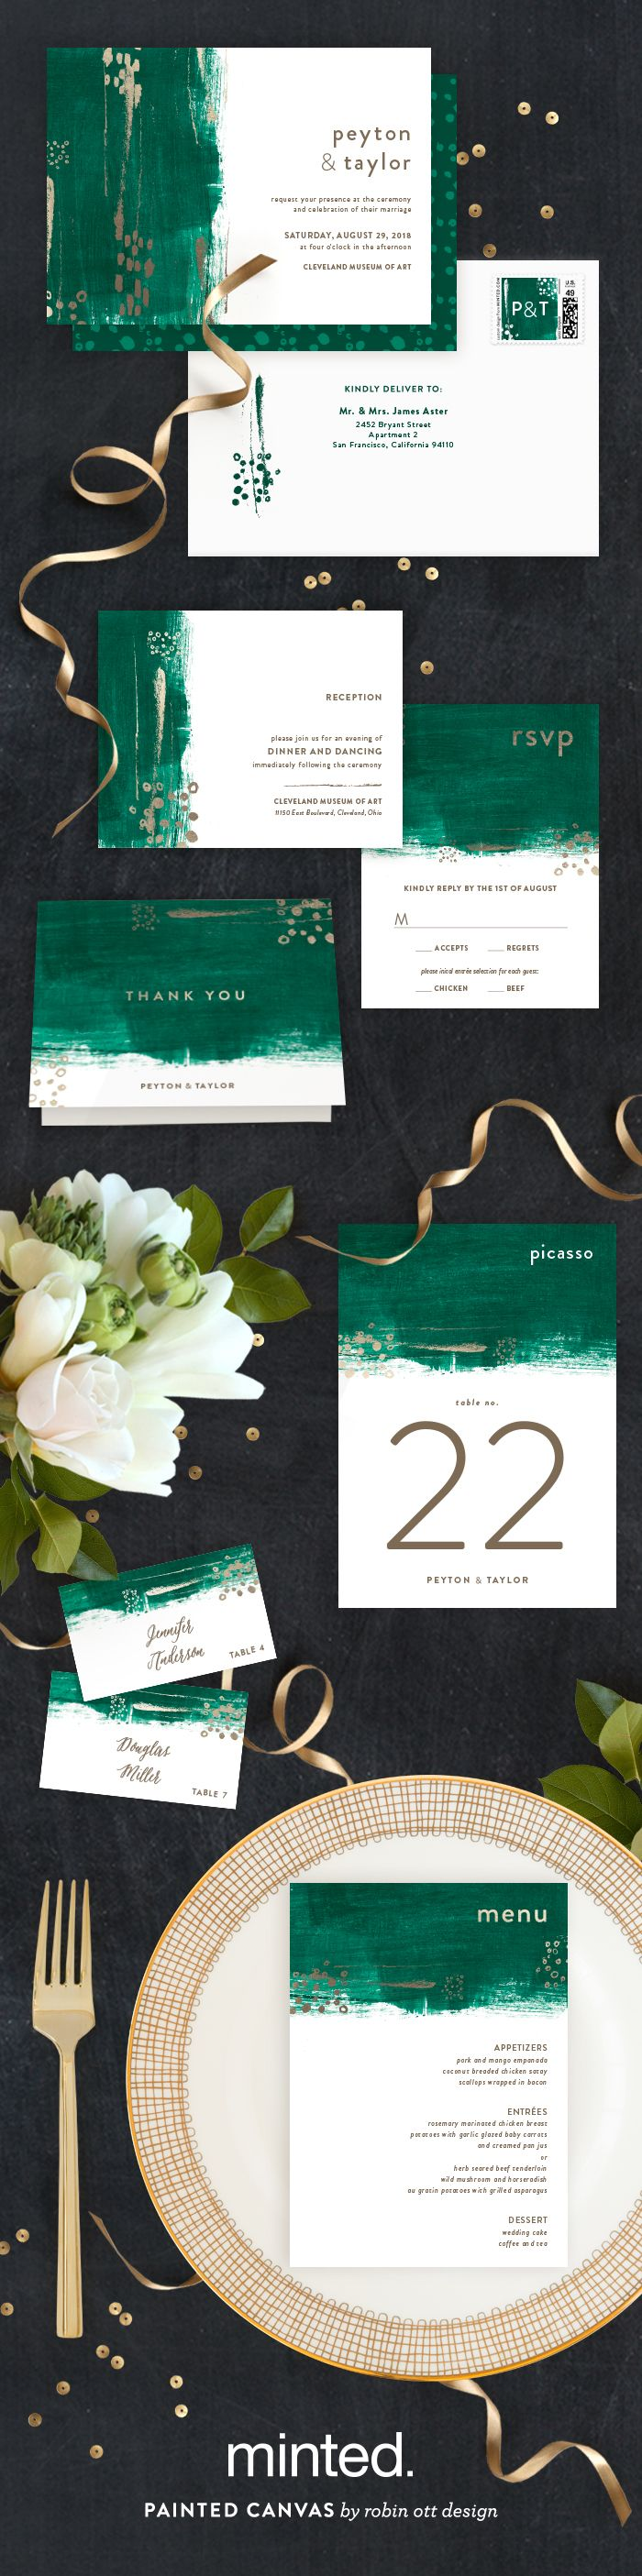 navy blue and kelly green wedding invitations%0A Add a hint of gold to your emerald green wedding to give it an elegant  opulence